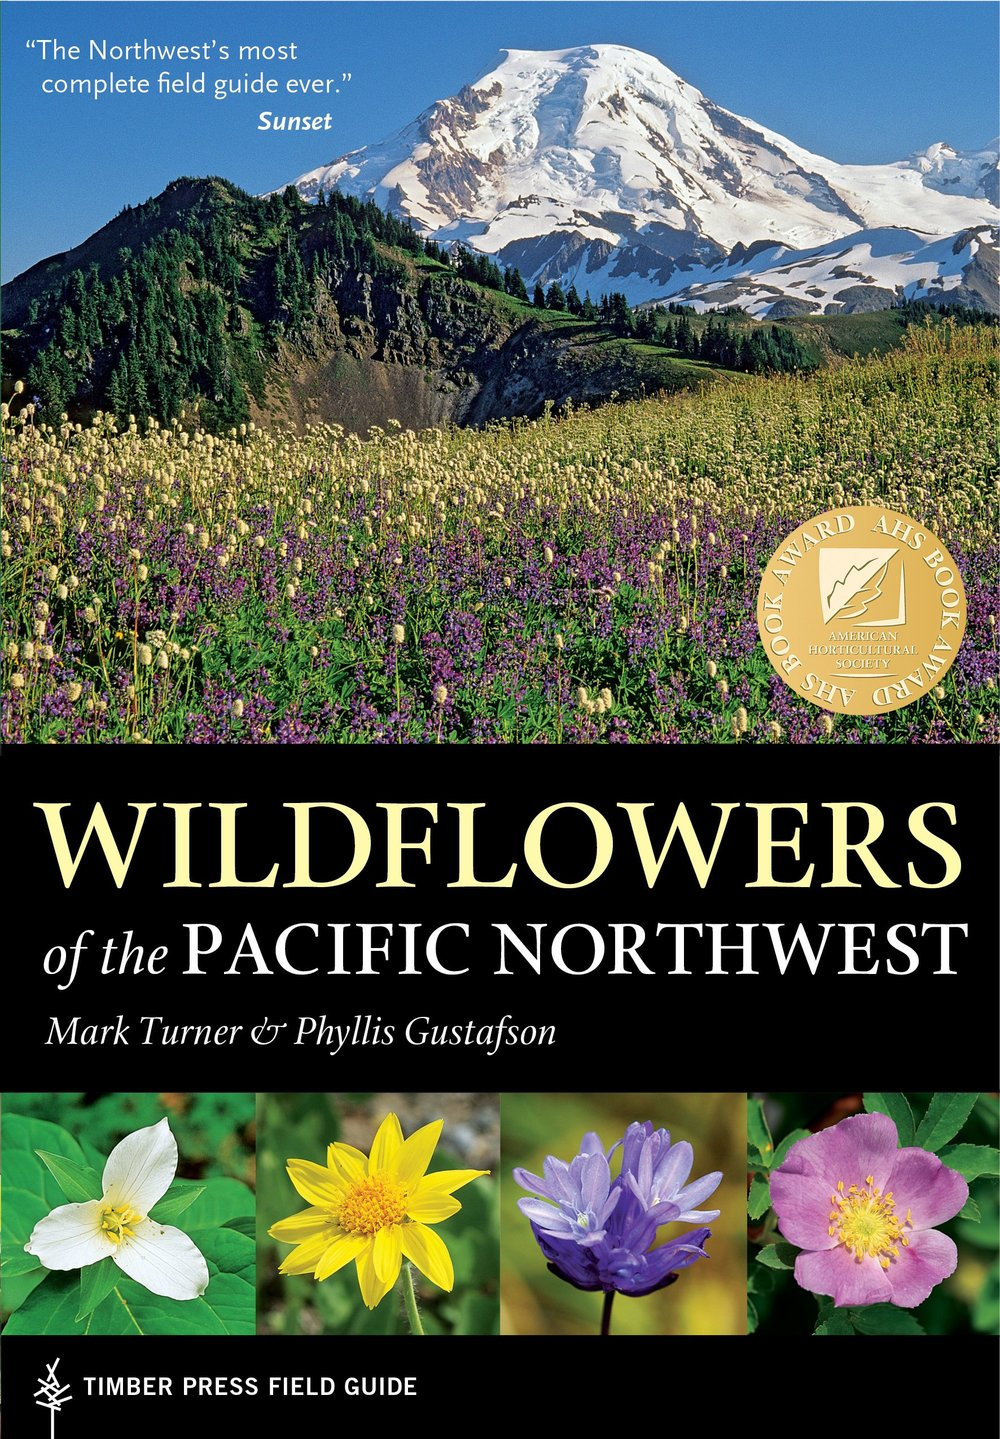 wildflowers of the pacific northwest.jpg